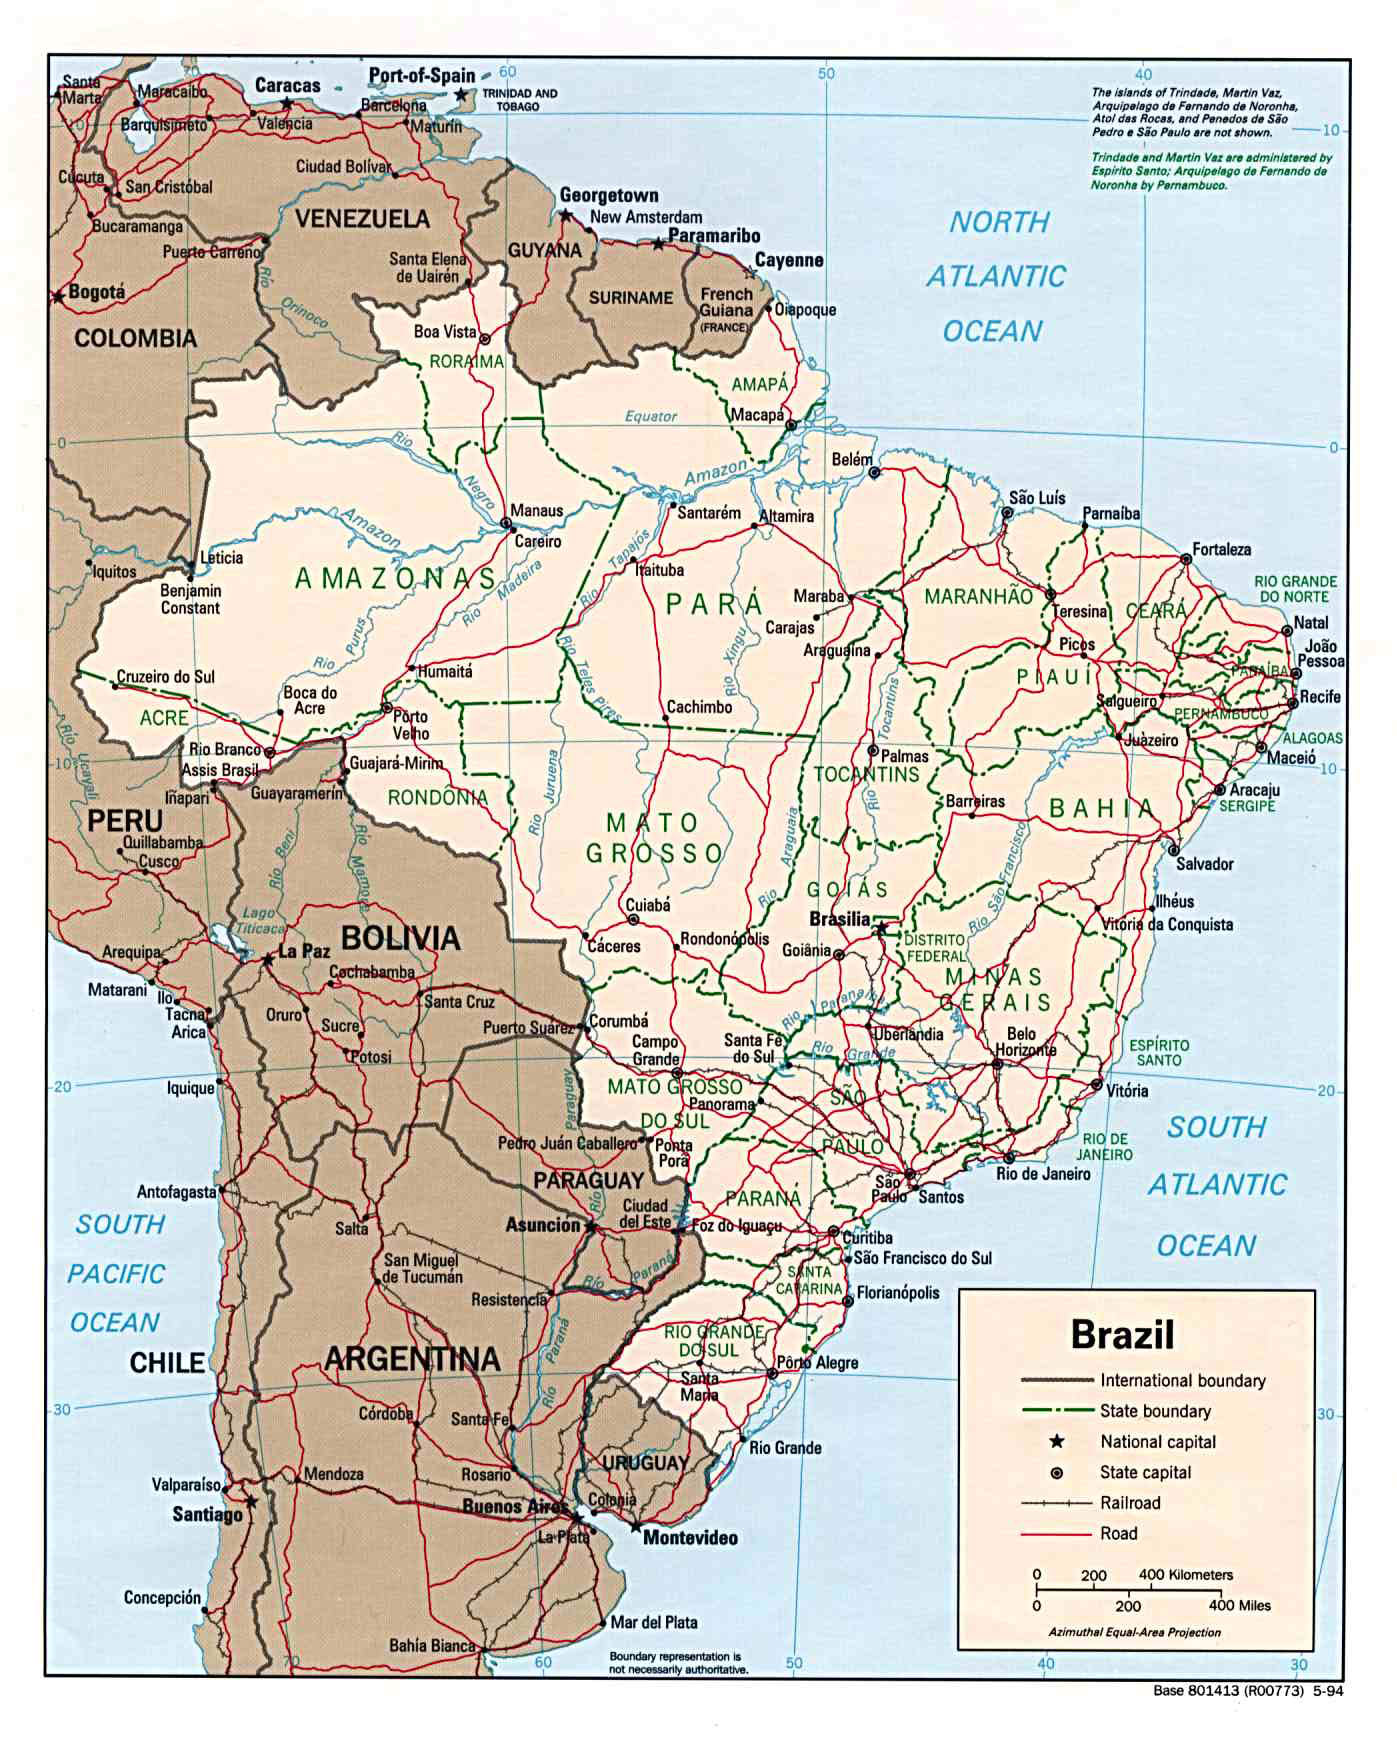 Large Detailed Political Map Of Brazil With Roads And Cities - Political map of brazil